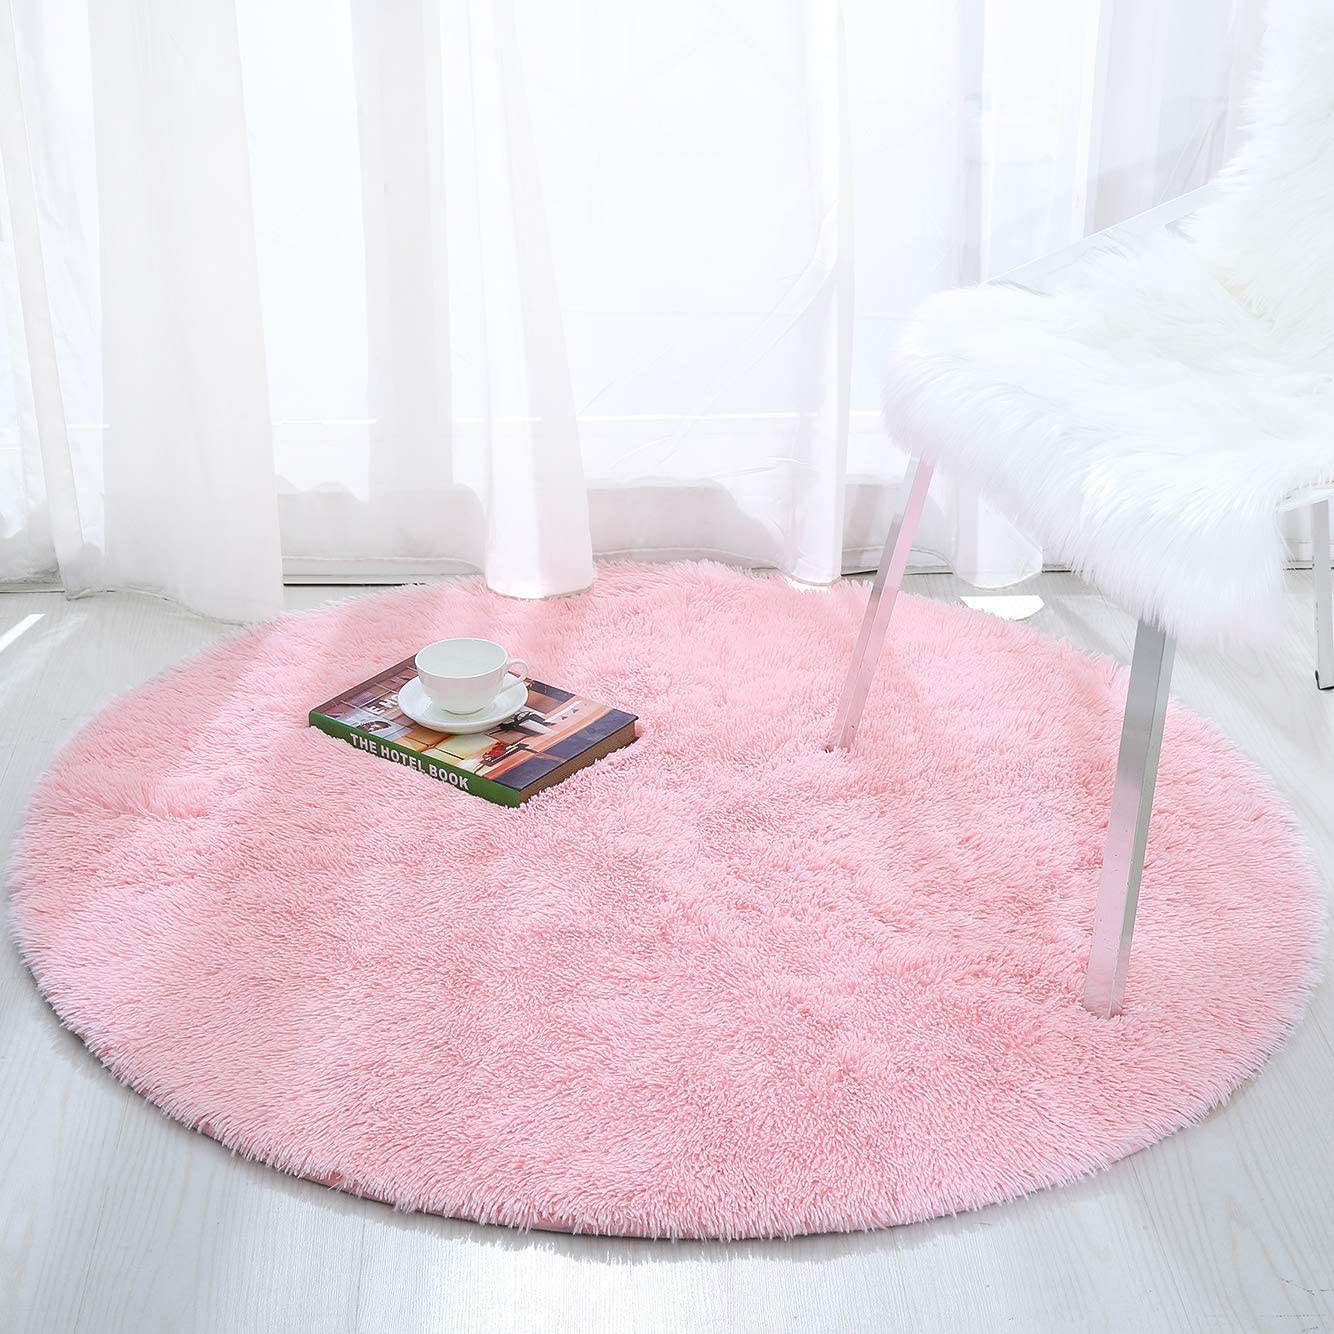 Direct stock discount Softlife Fluffy Soft Round Bedroom Rugs Shaggy Feet 4 Ranking TOP14 Circle x